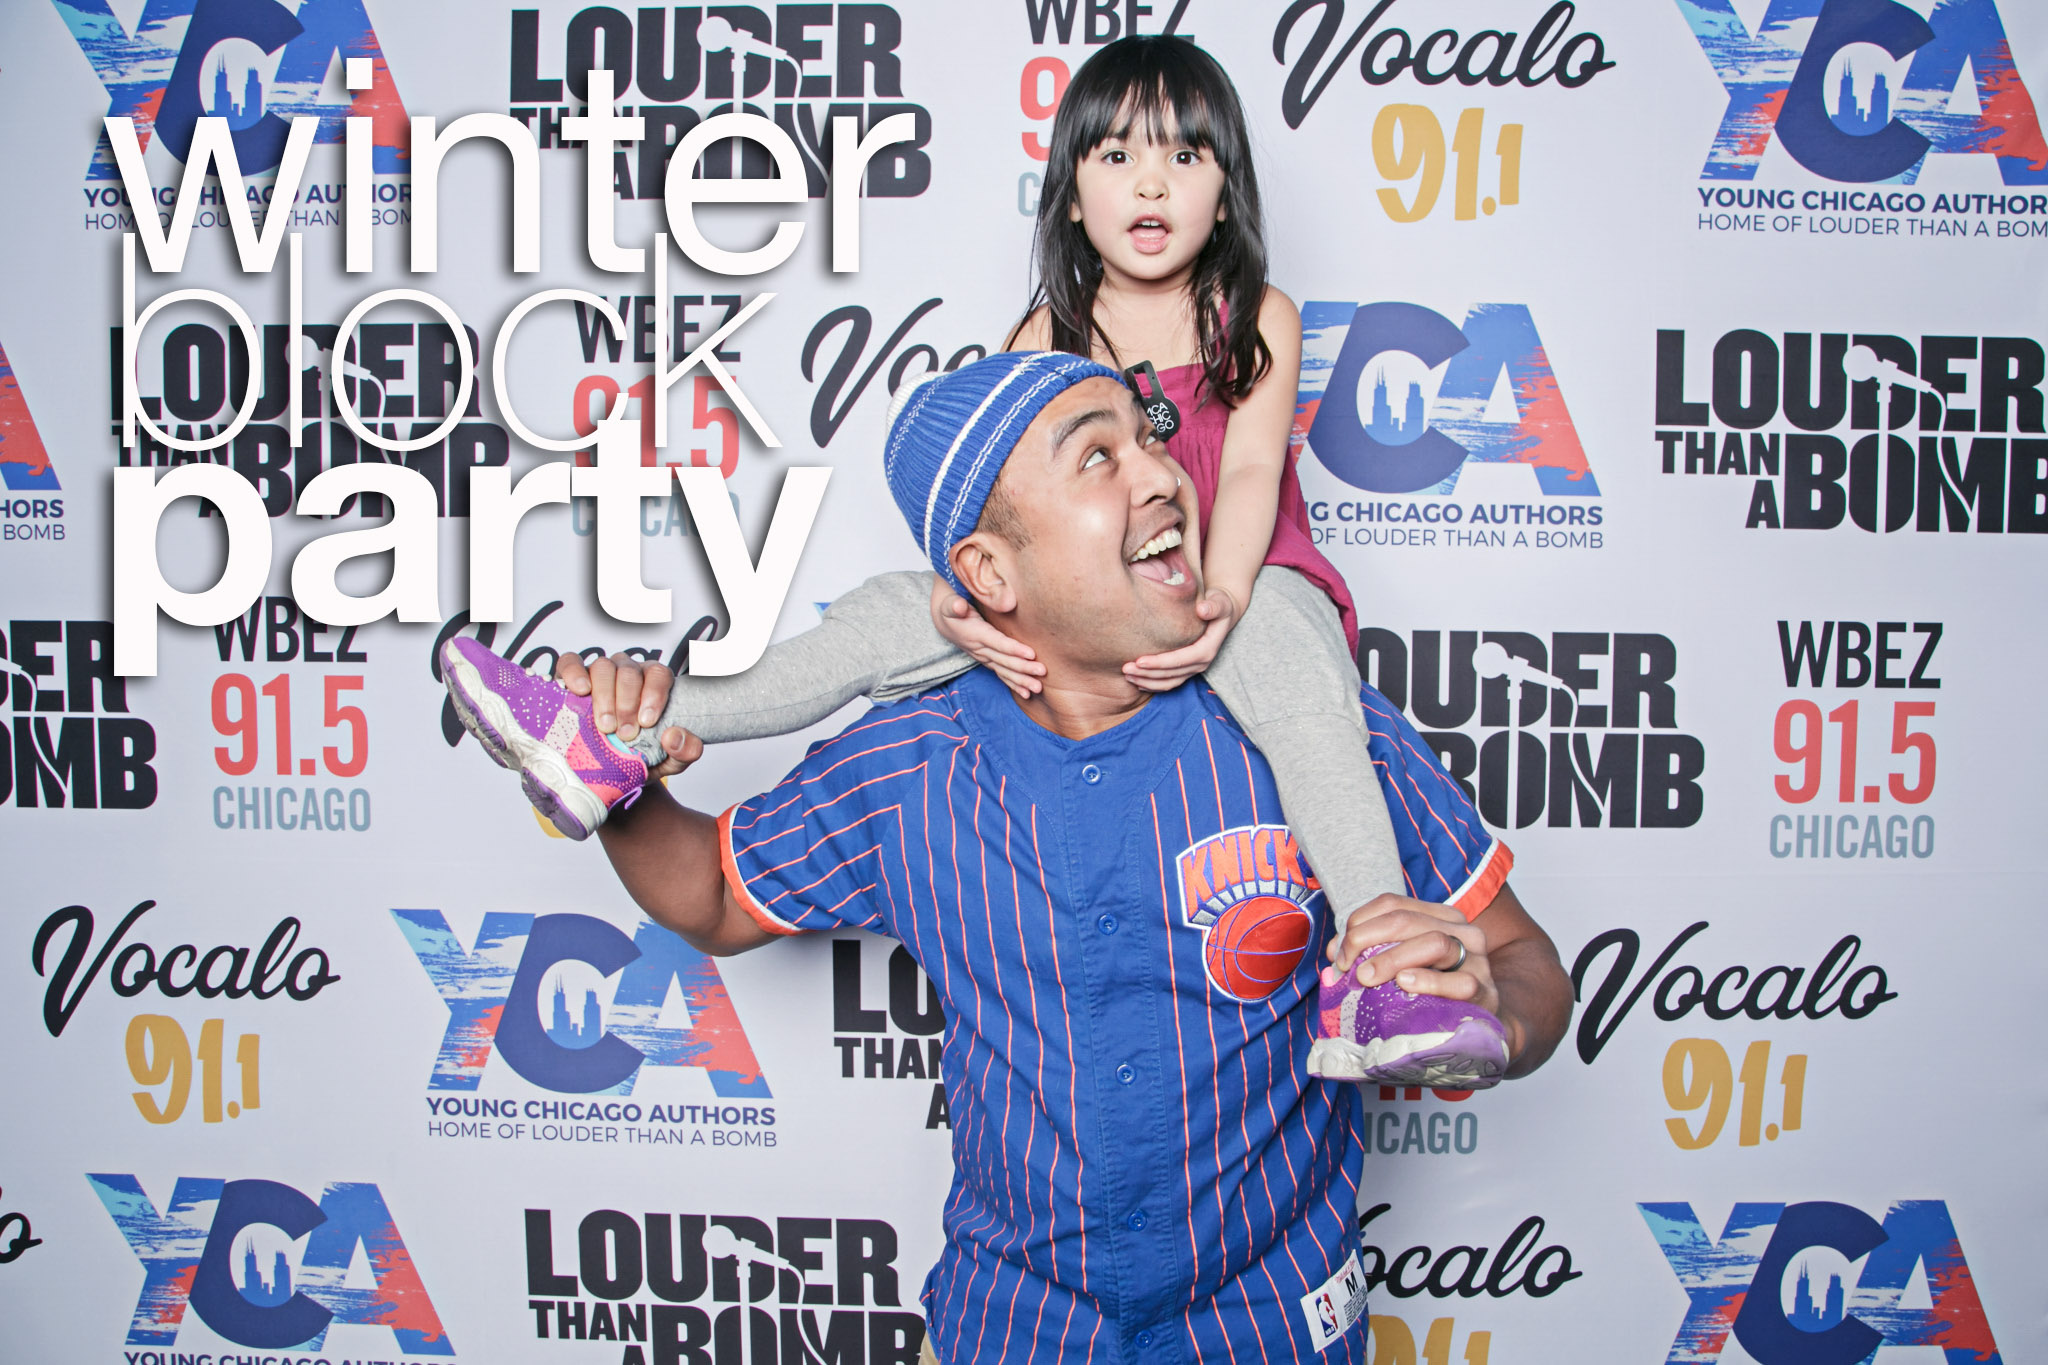 Winter Block Party with WBEZ, Vocalo, and YCA